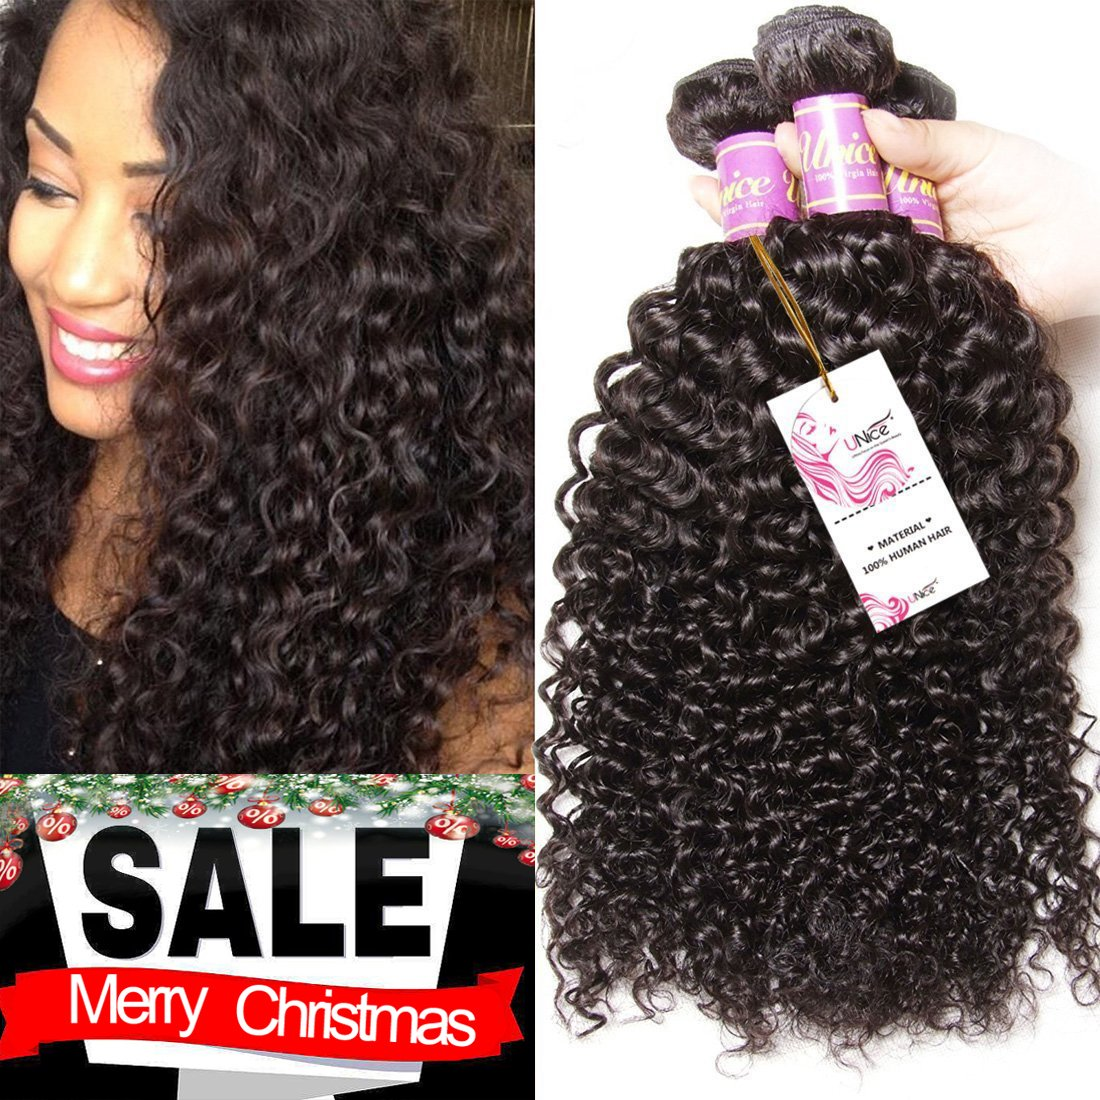 Unice Hair 3 Bundles Brazilian Curly Virgin Hair Weave 16 18 20inches Unprocessed Human Hair Extensions Natural Color Can Be Dyed and Bleached